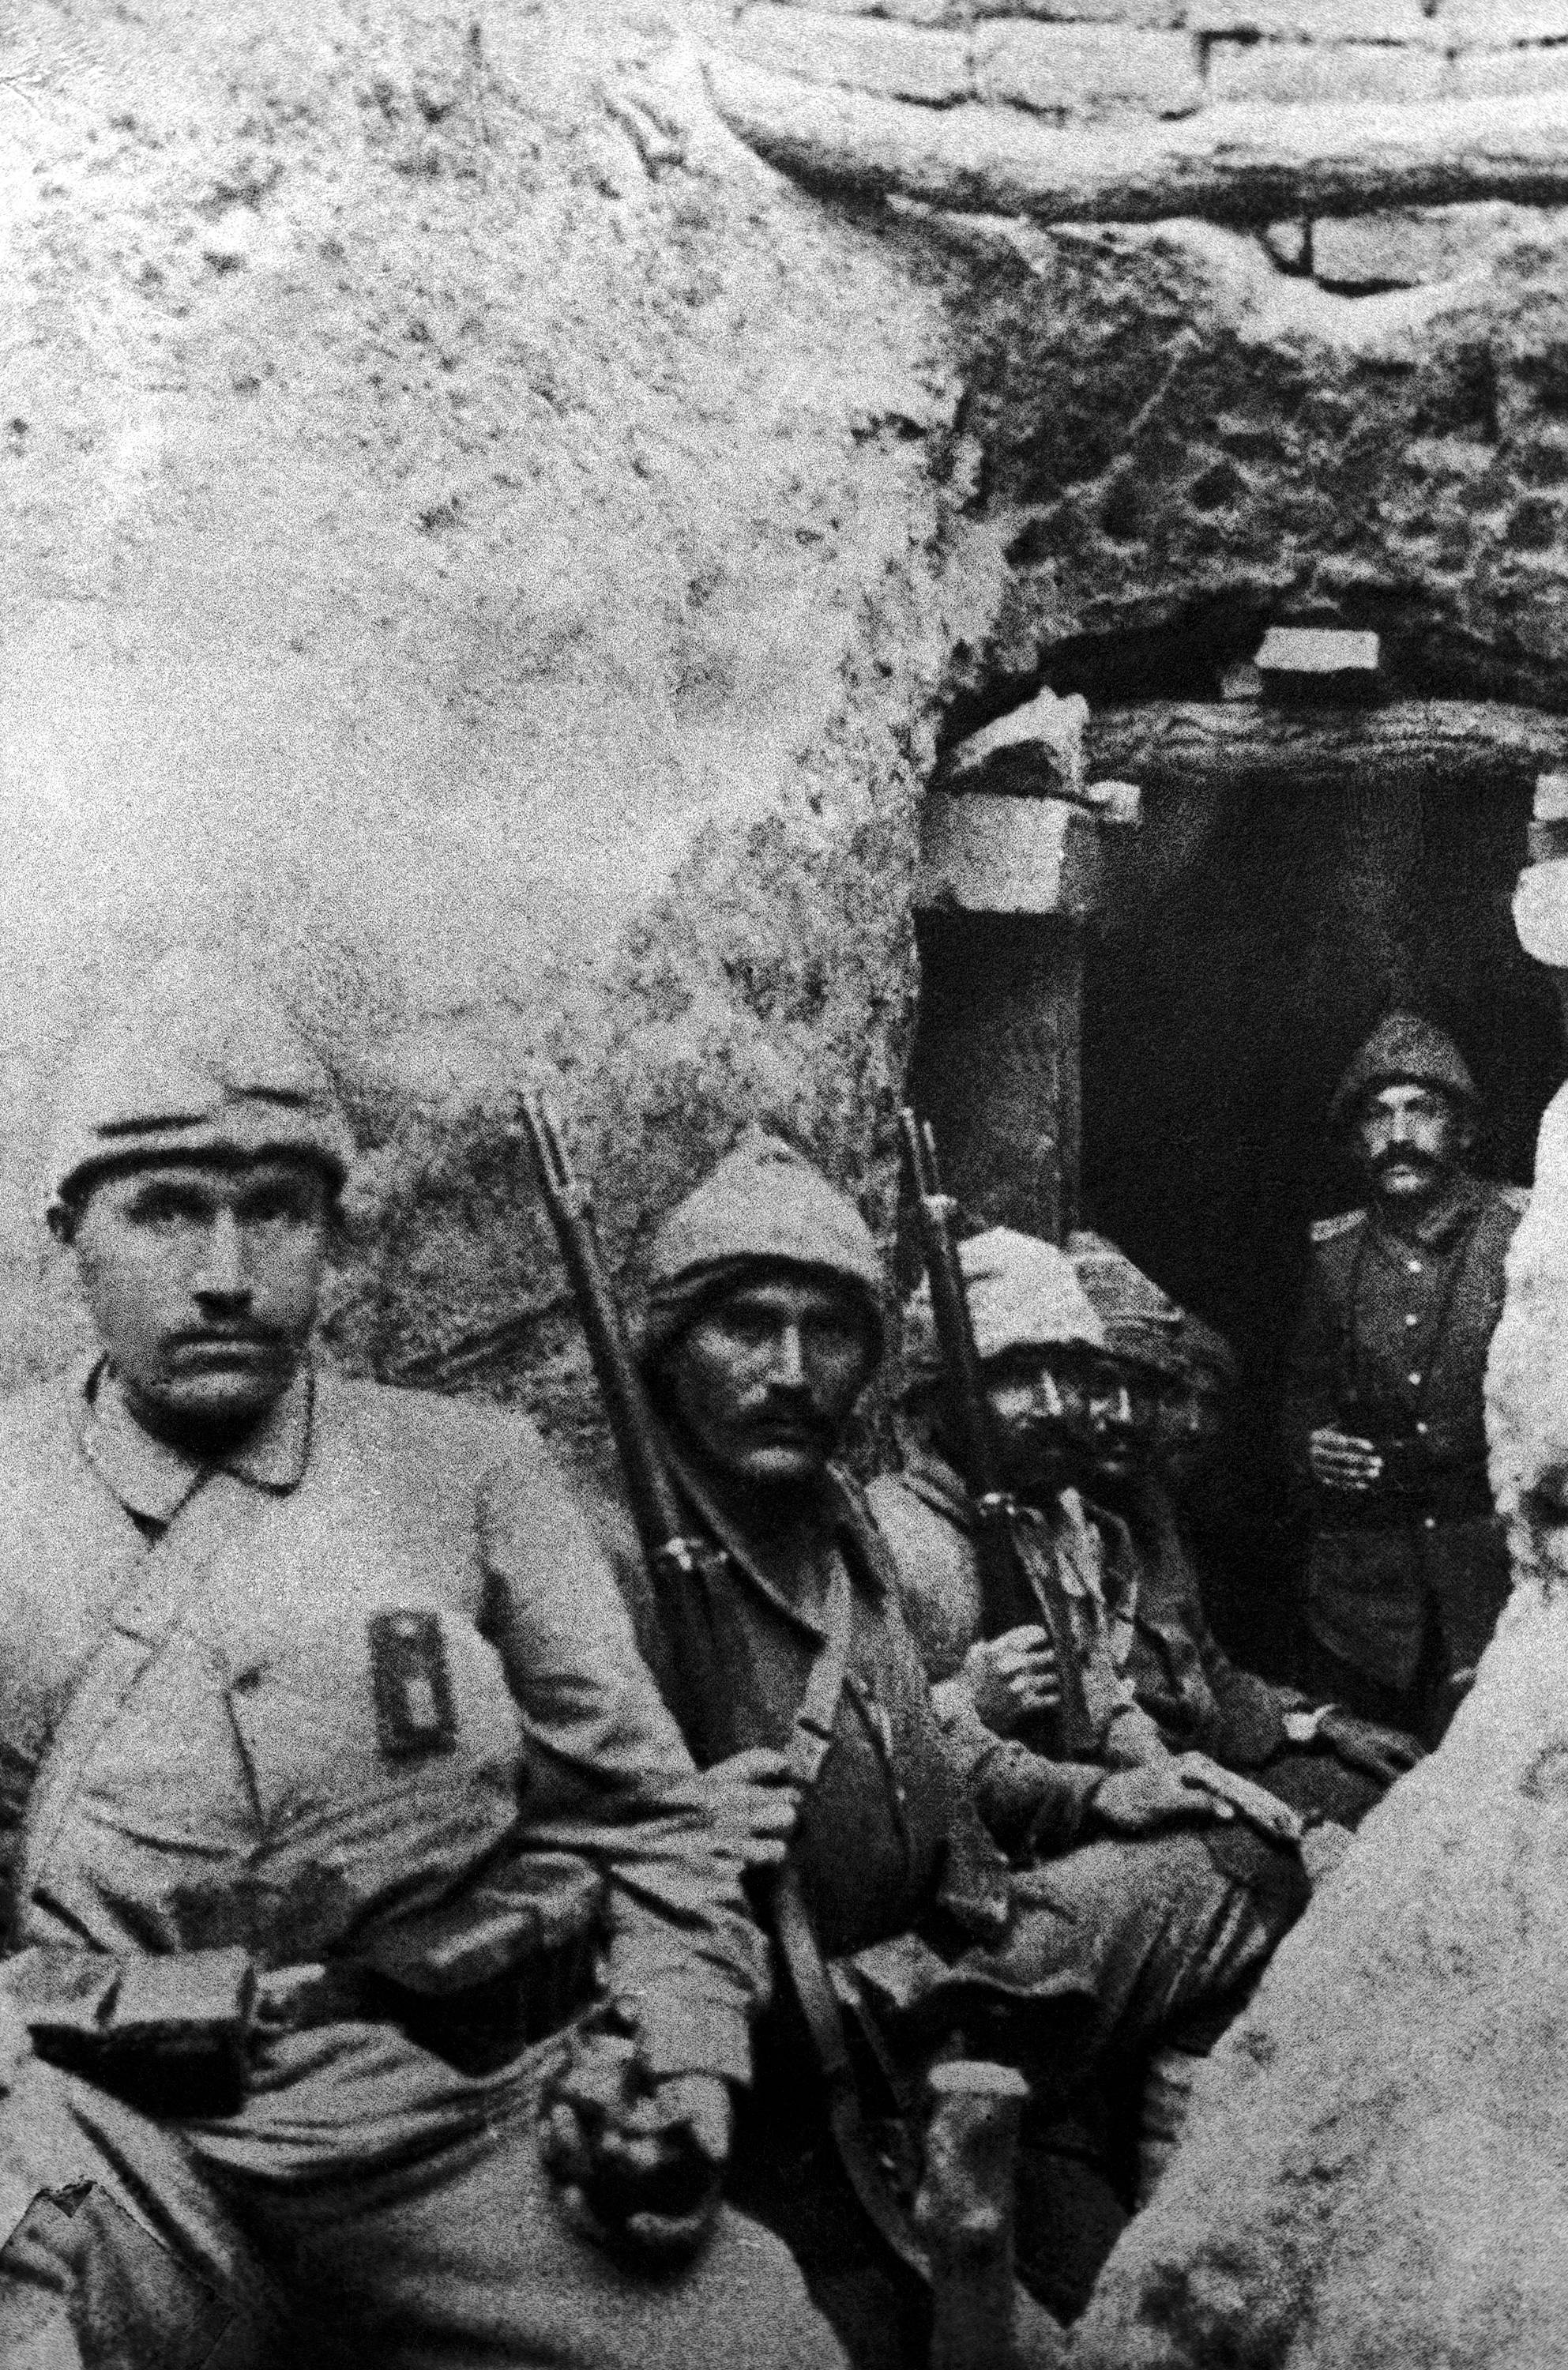 39 OF 100: In this 1915 file photo, Turkish soldiers take a rest during fighting, with their guns in their hands, in a trench in Gallipoli, Turkey.